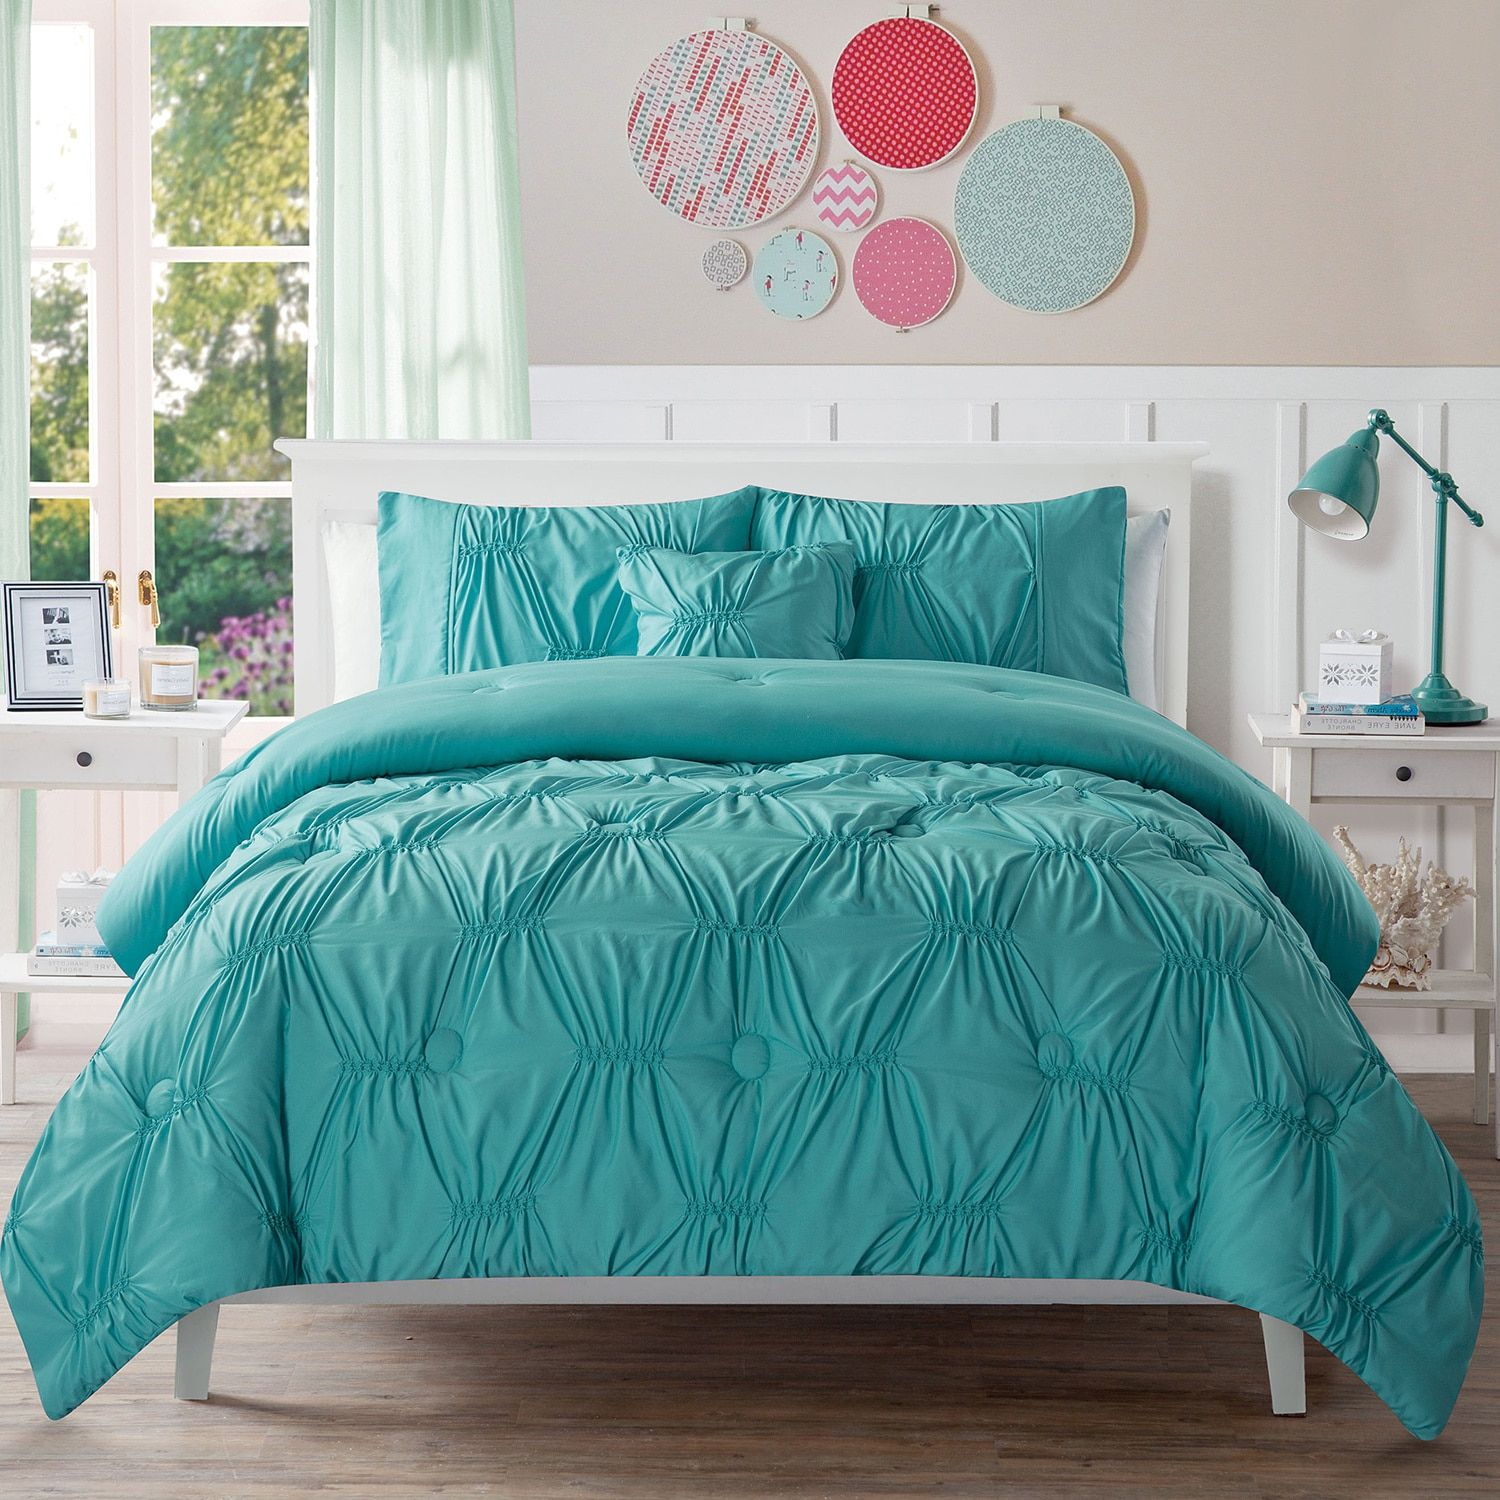 bed set free jefferson com bath comforter in square bedding bag a shipping on overstock product